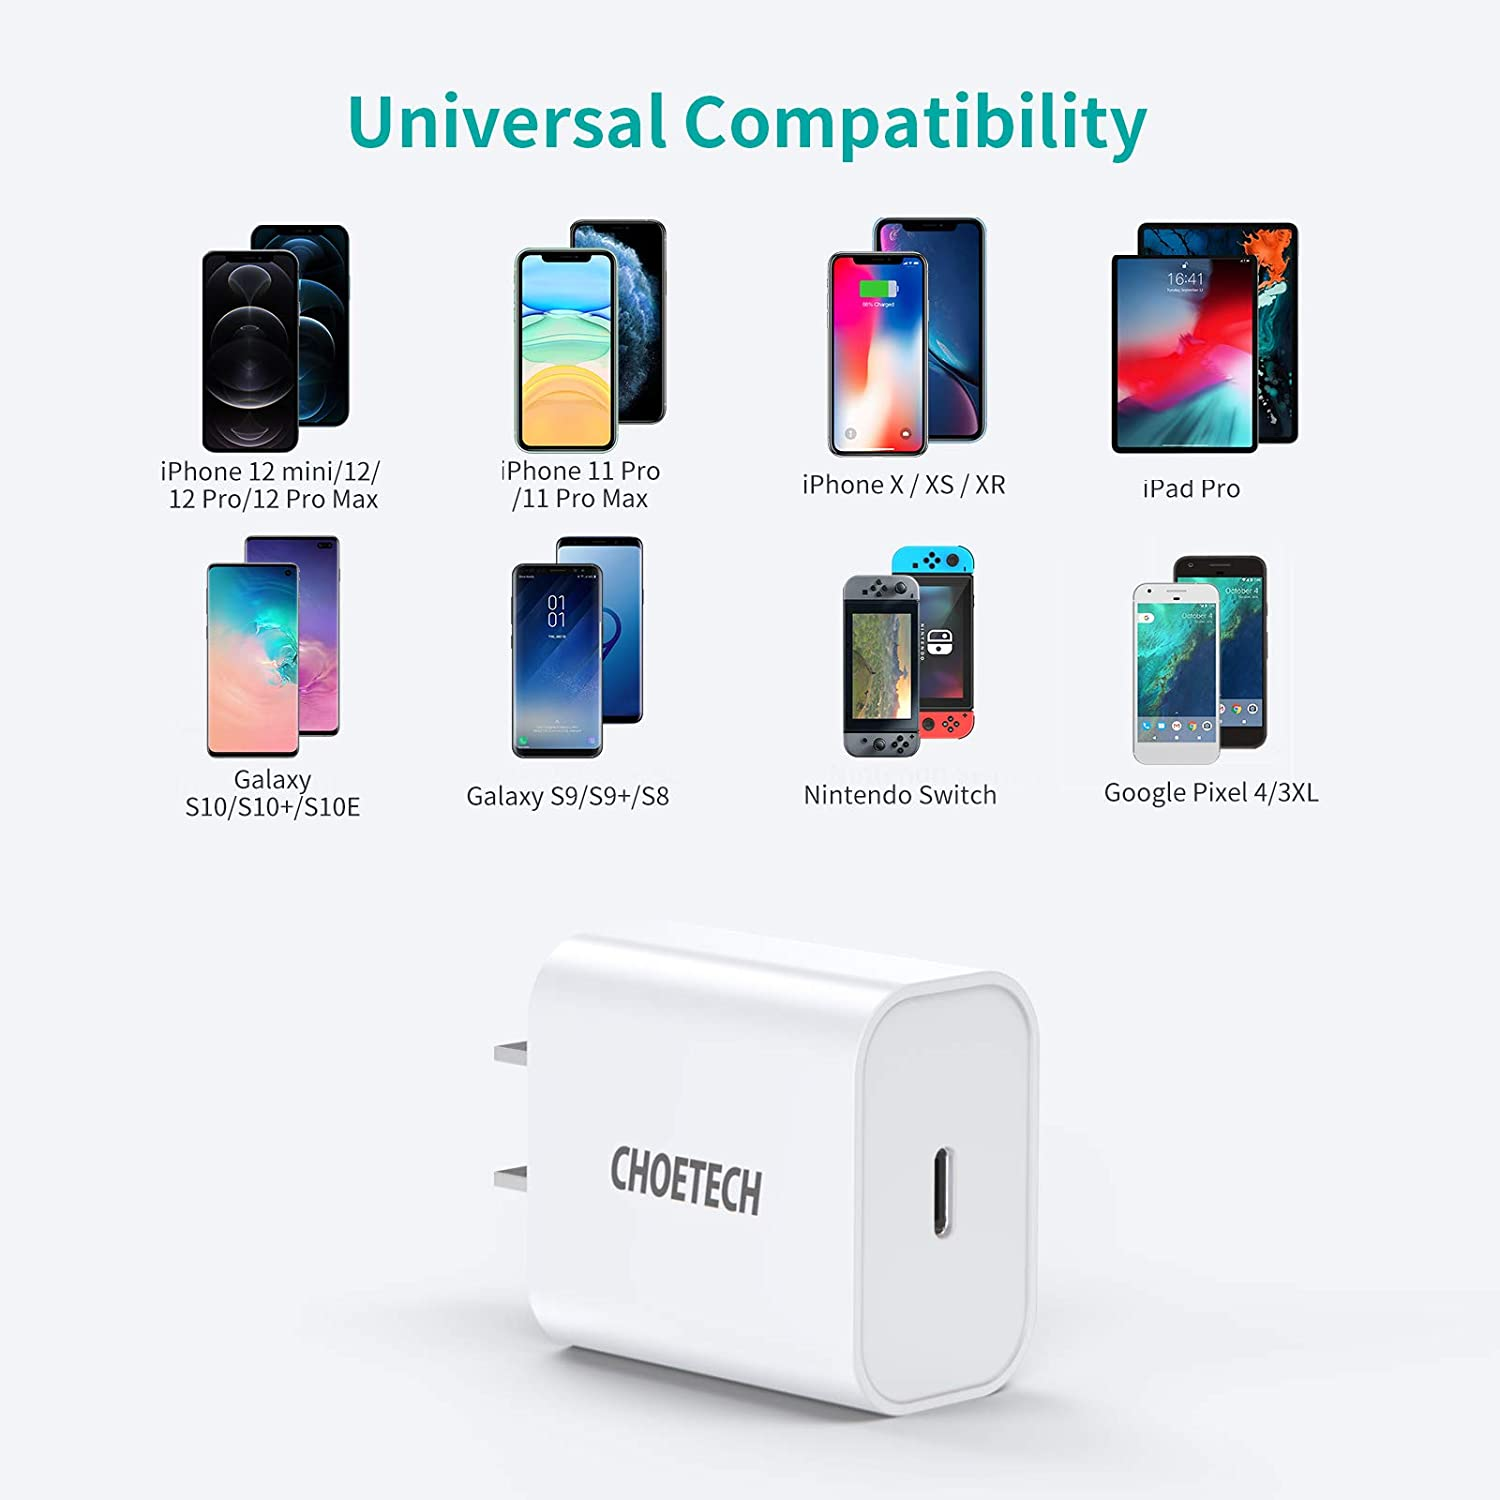 Q5004 CHOETECH PD Fast Type C Wall Charger 20W Compatible iPhone 12 Pro Max/12 Mini/11 Pro Max